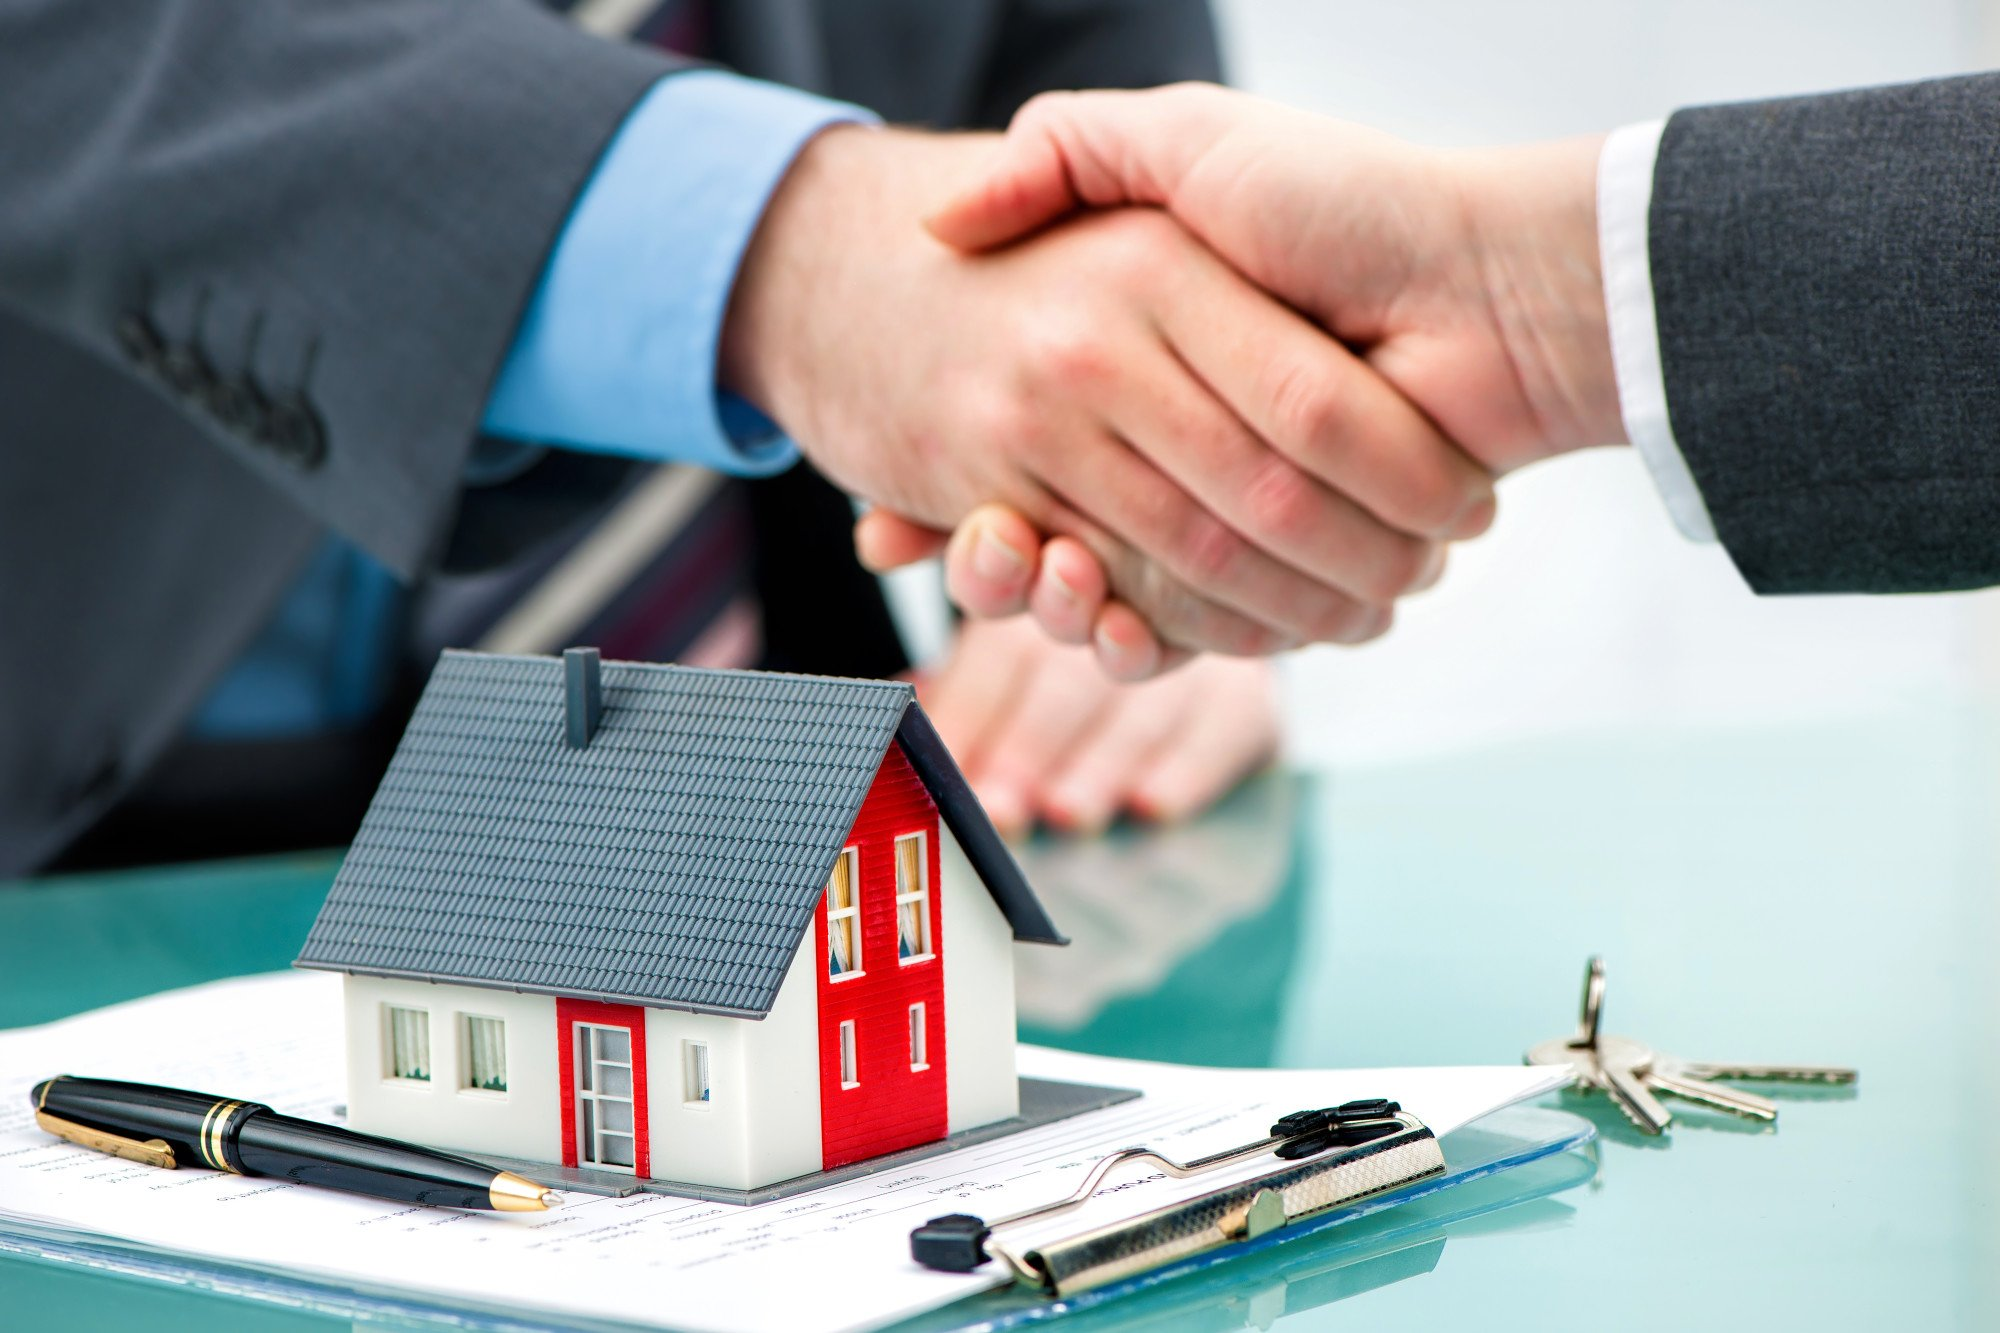 How to Sell a House Fast: 8 Great Tips